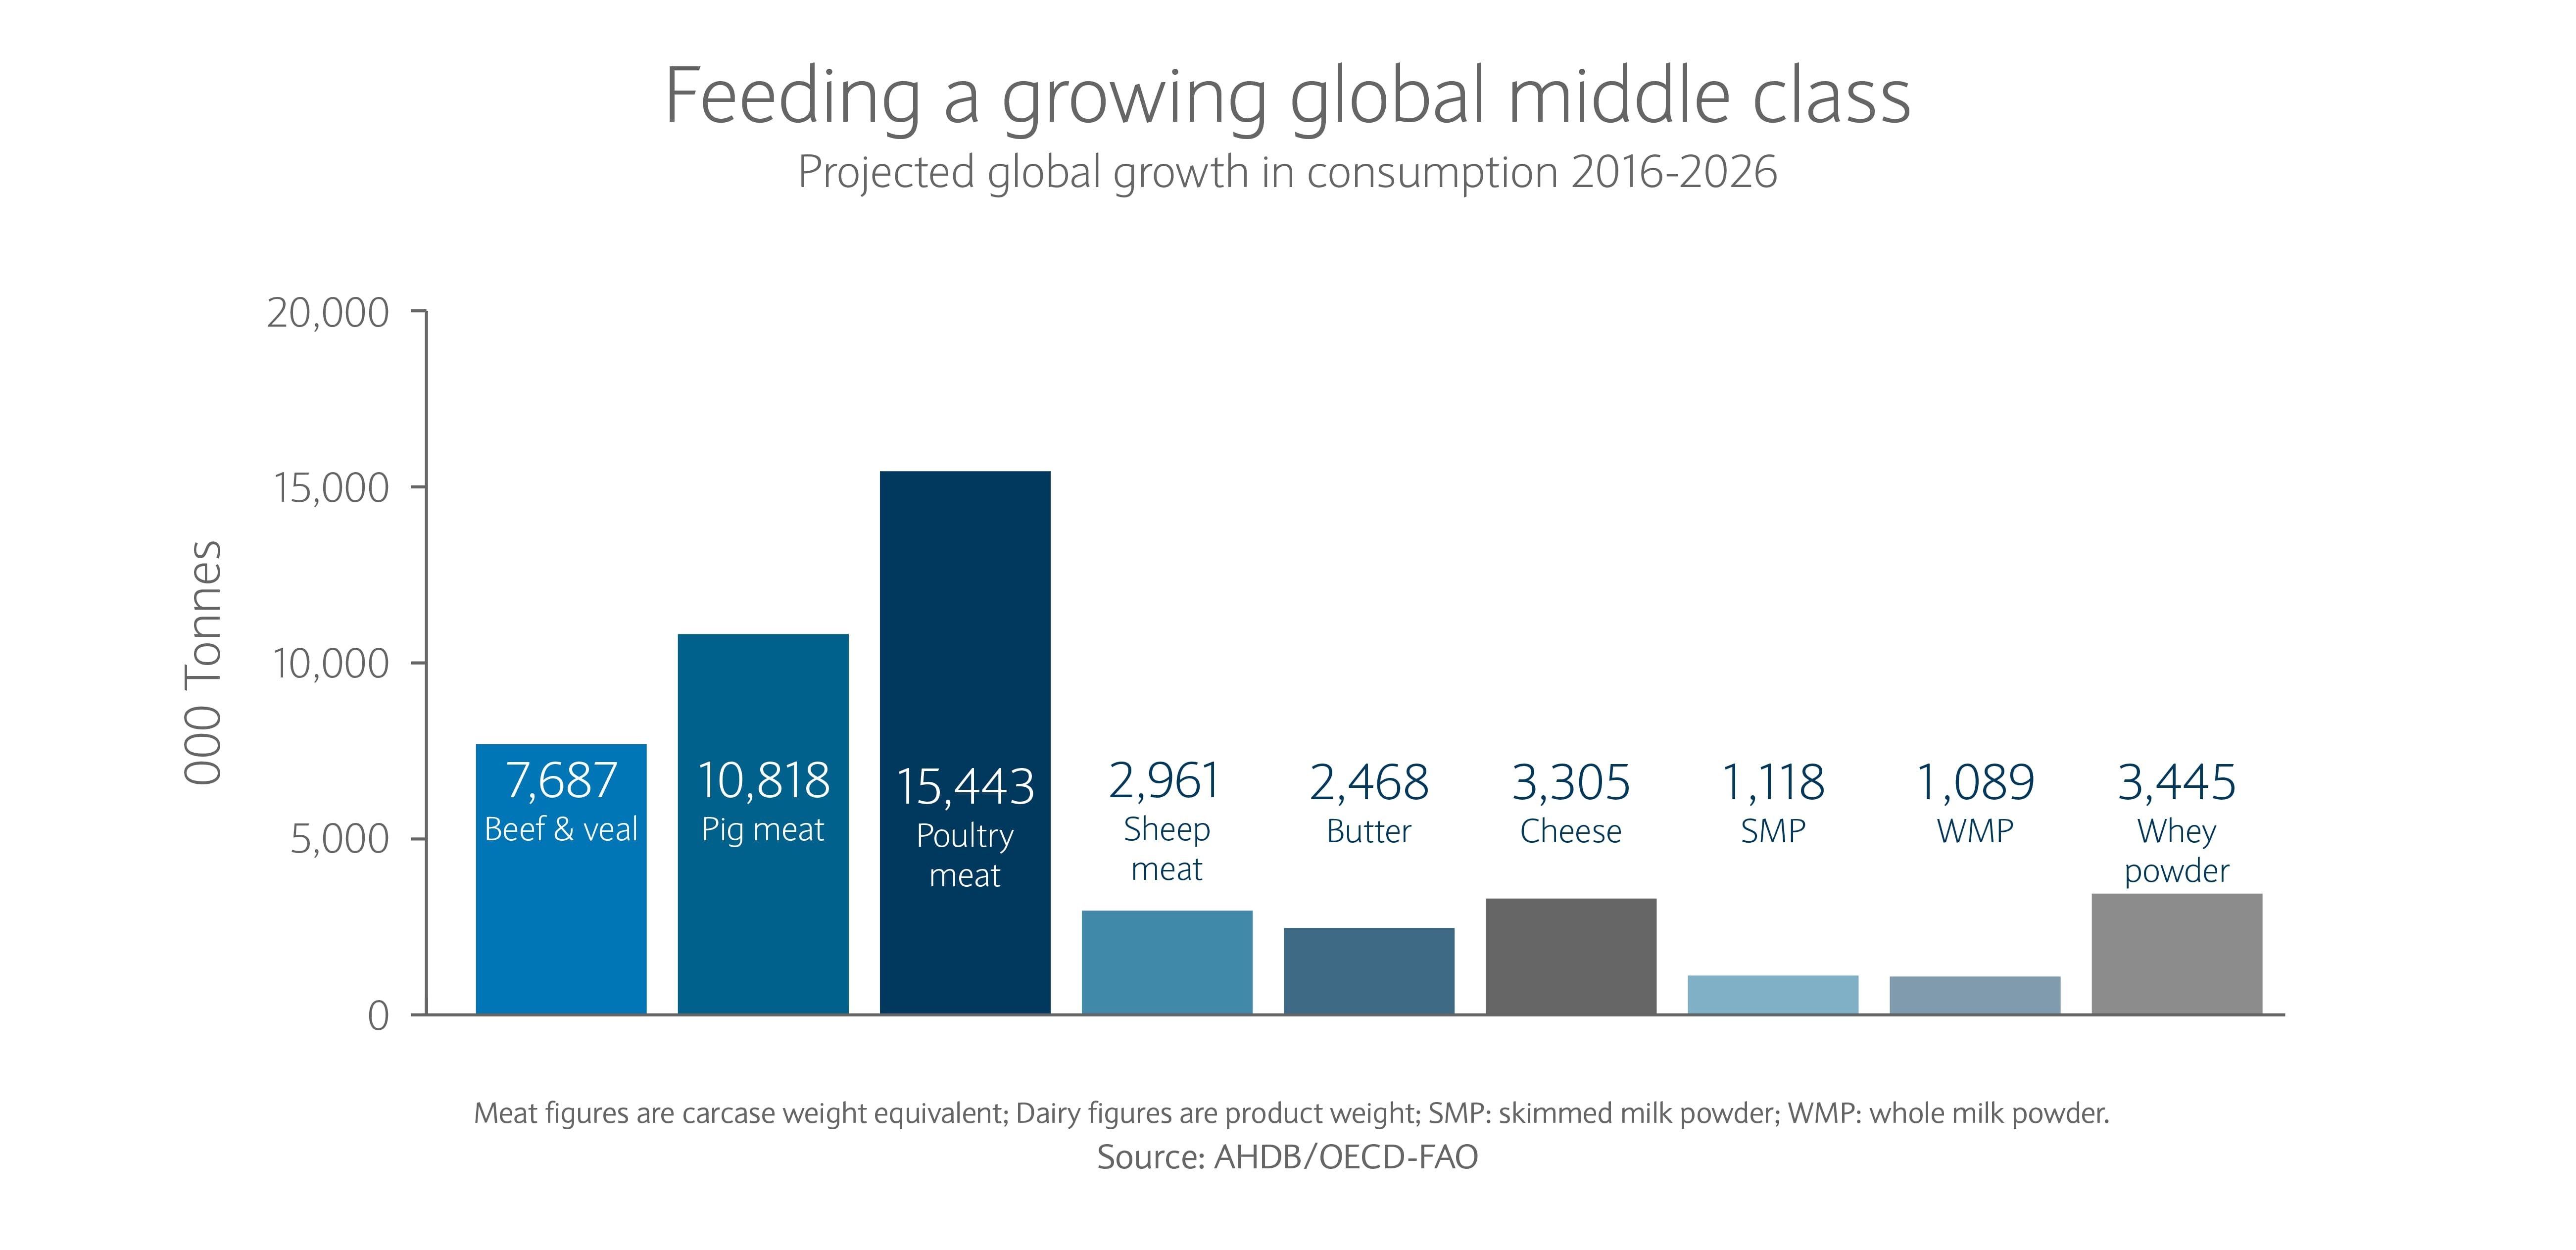 A graph showing the projected middle class growth in consumption 2016-2026